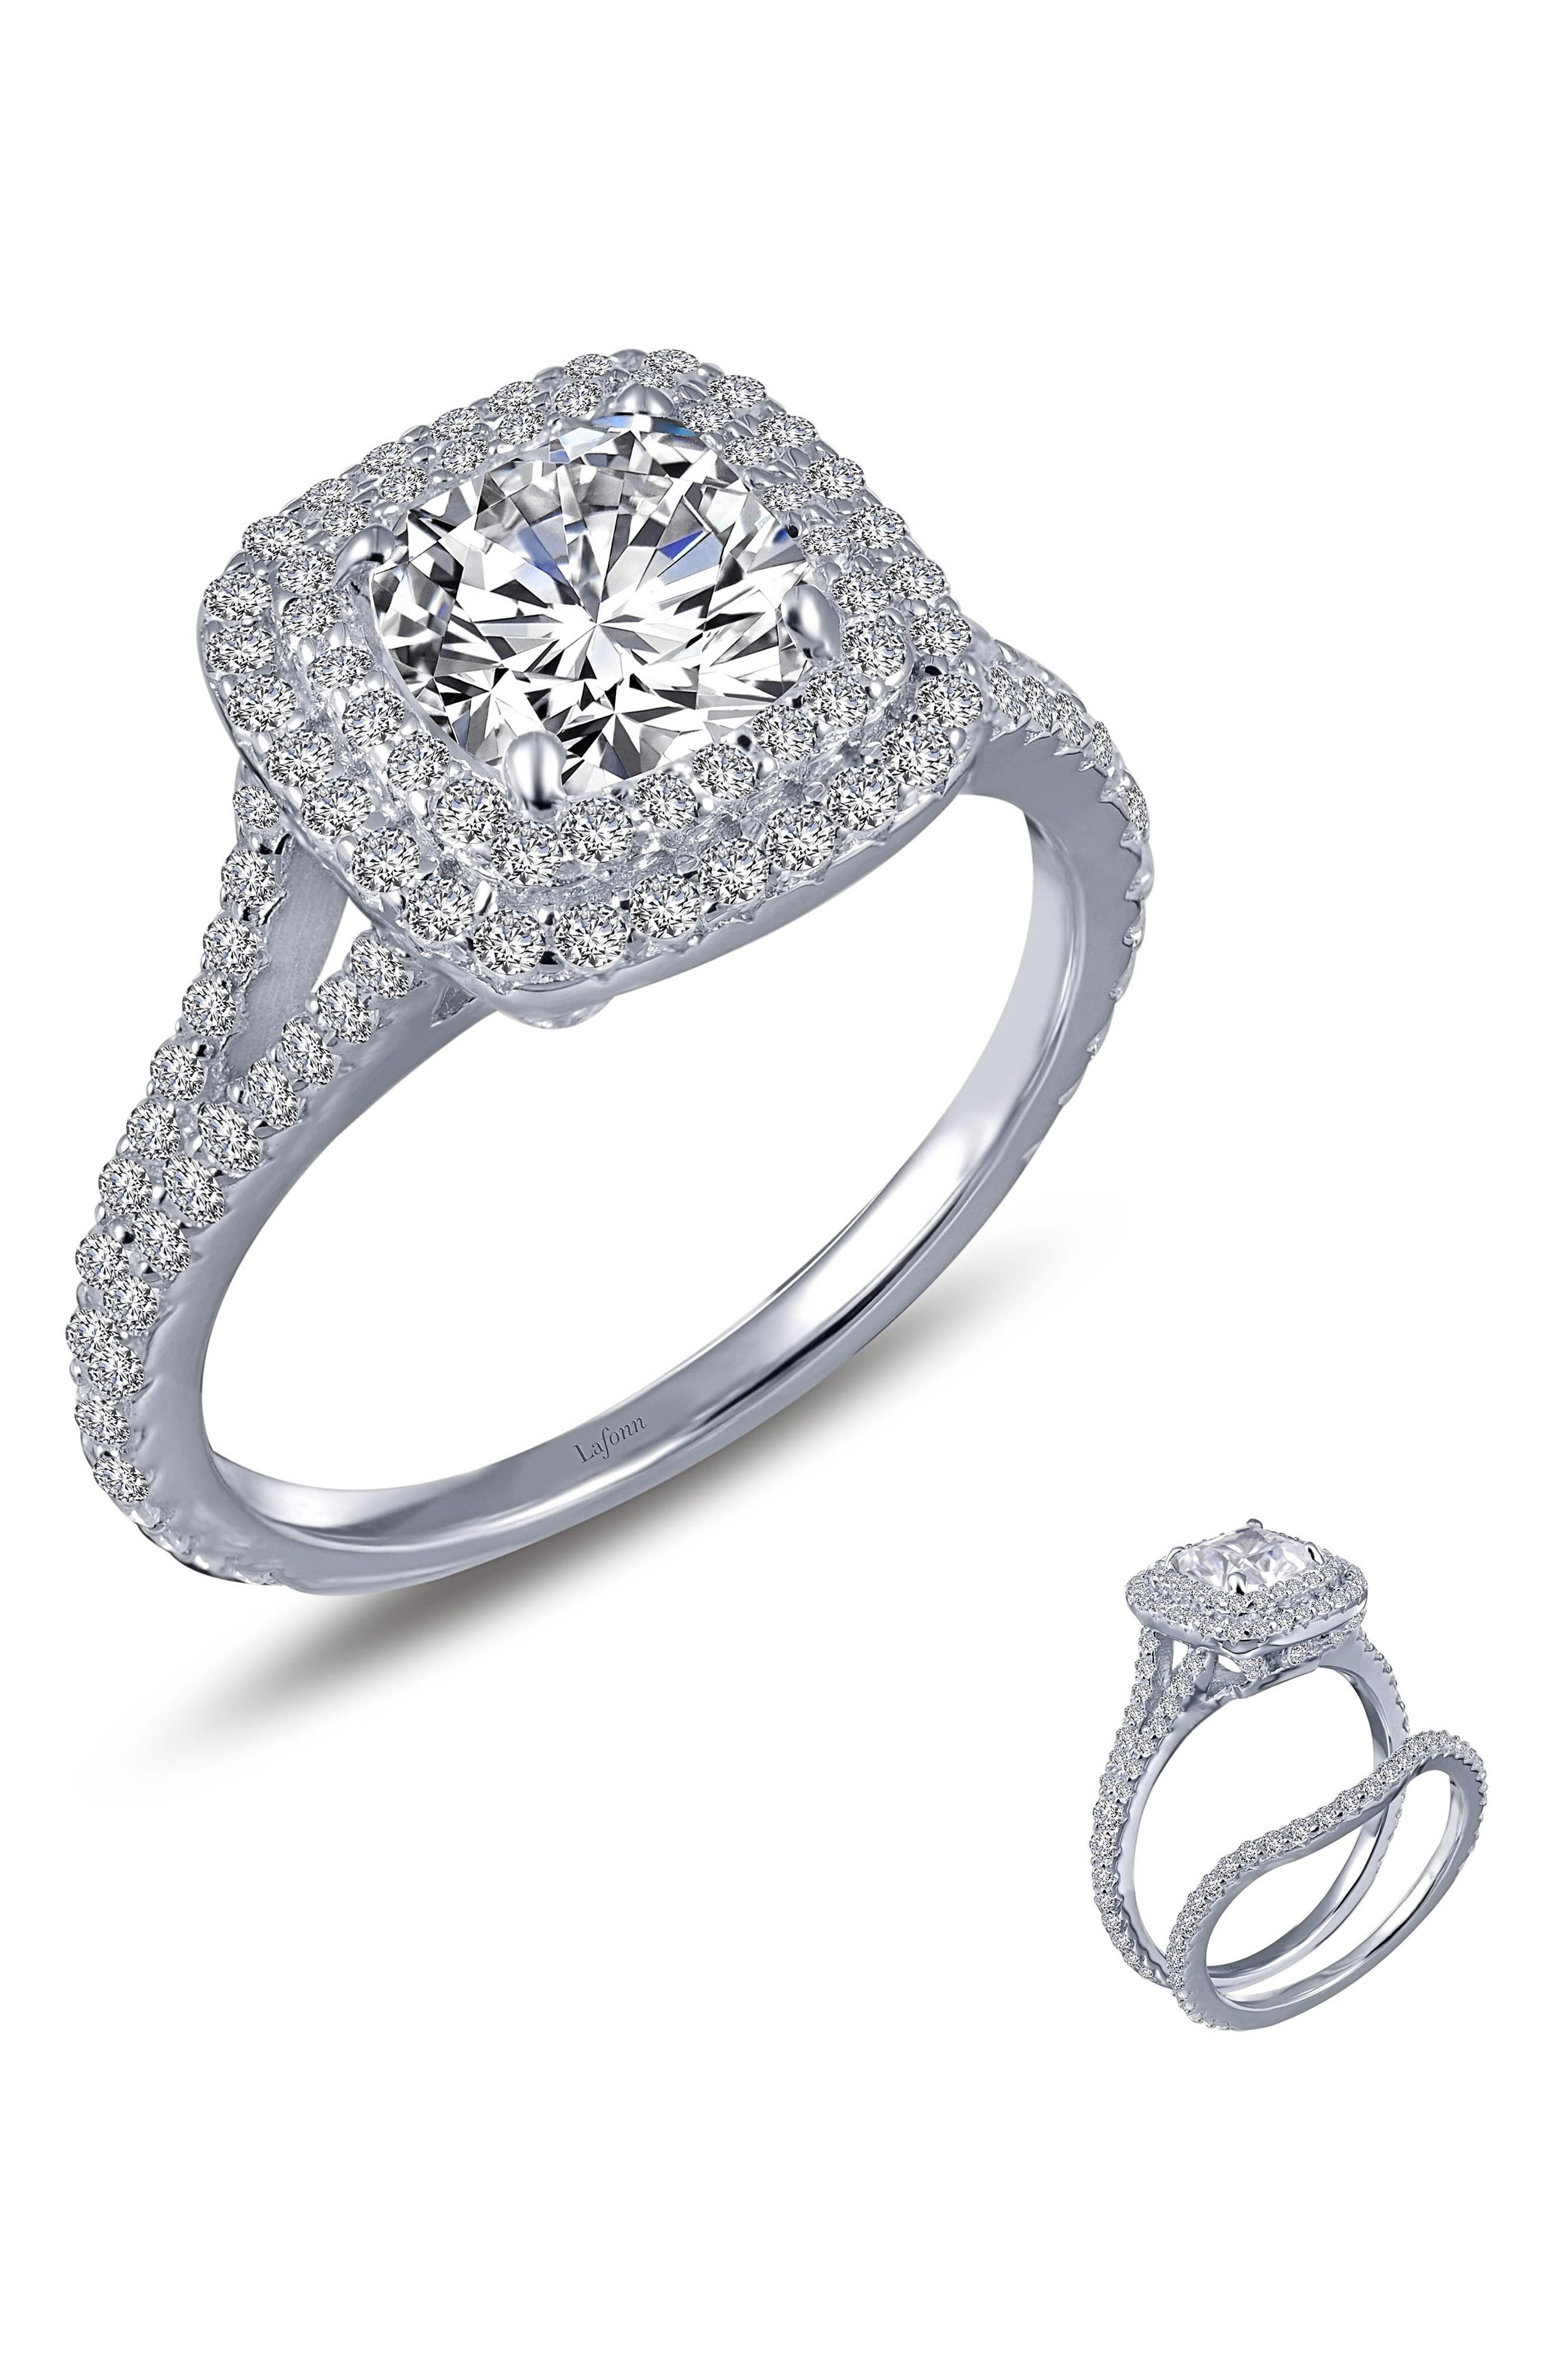 Double Halo Simulated Diamond Ring,                             Alternate thumbnail 3, color,                             040